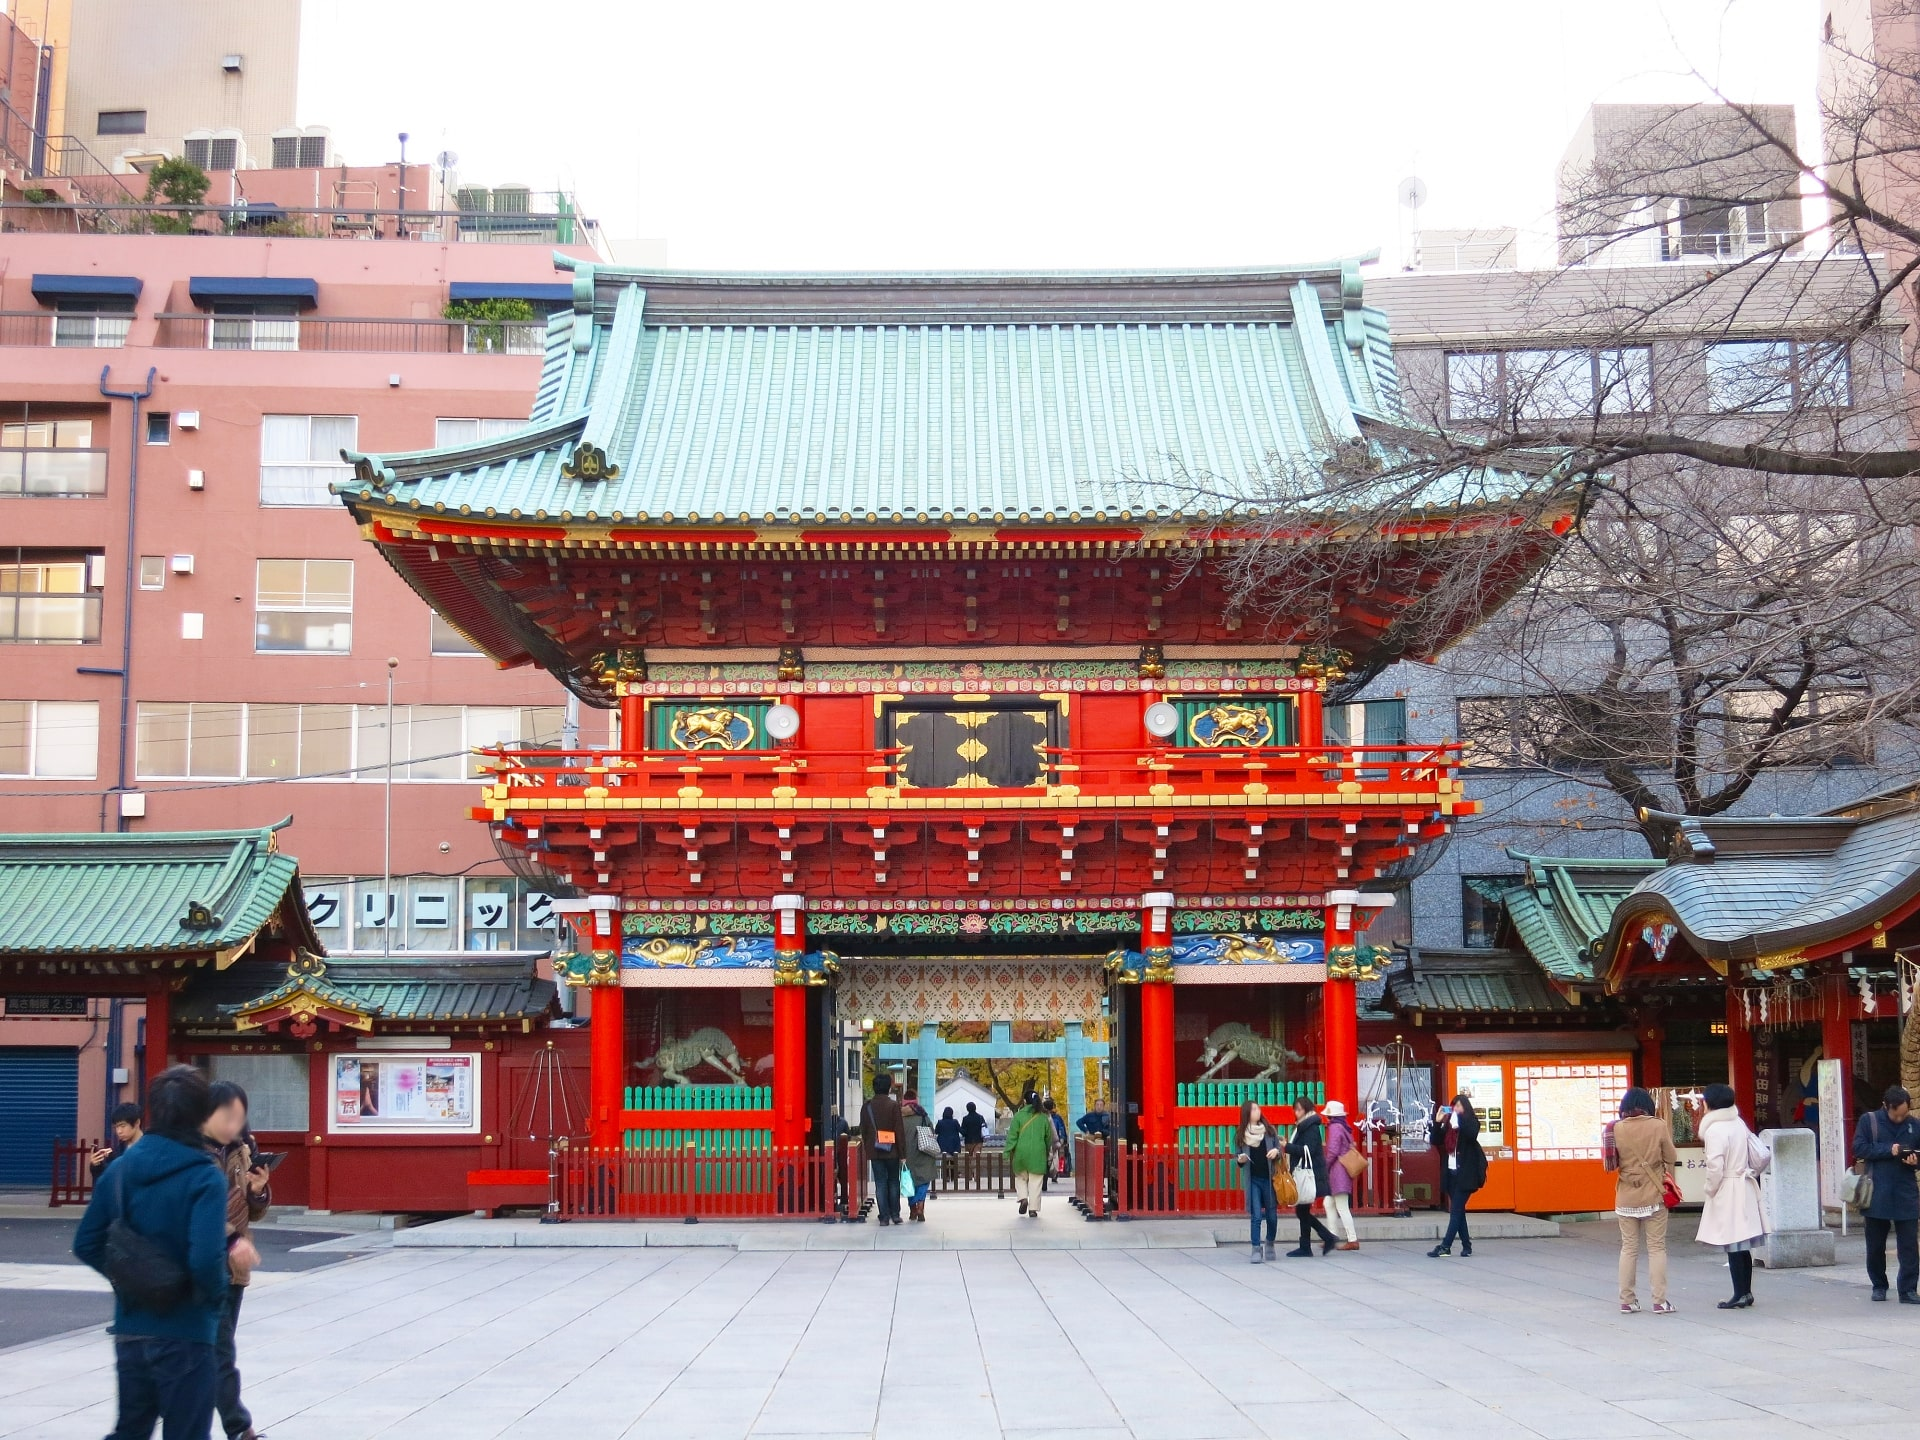 The gate of Kanda Myojin Shrine